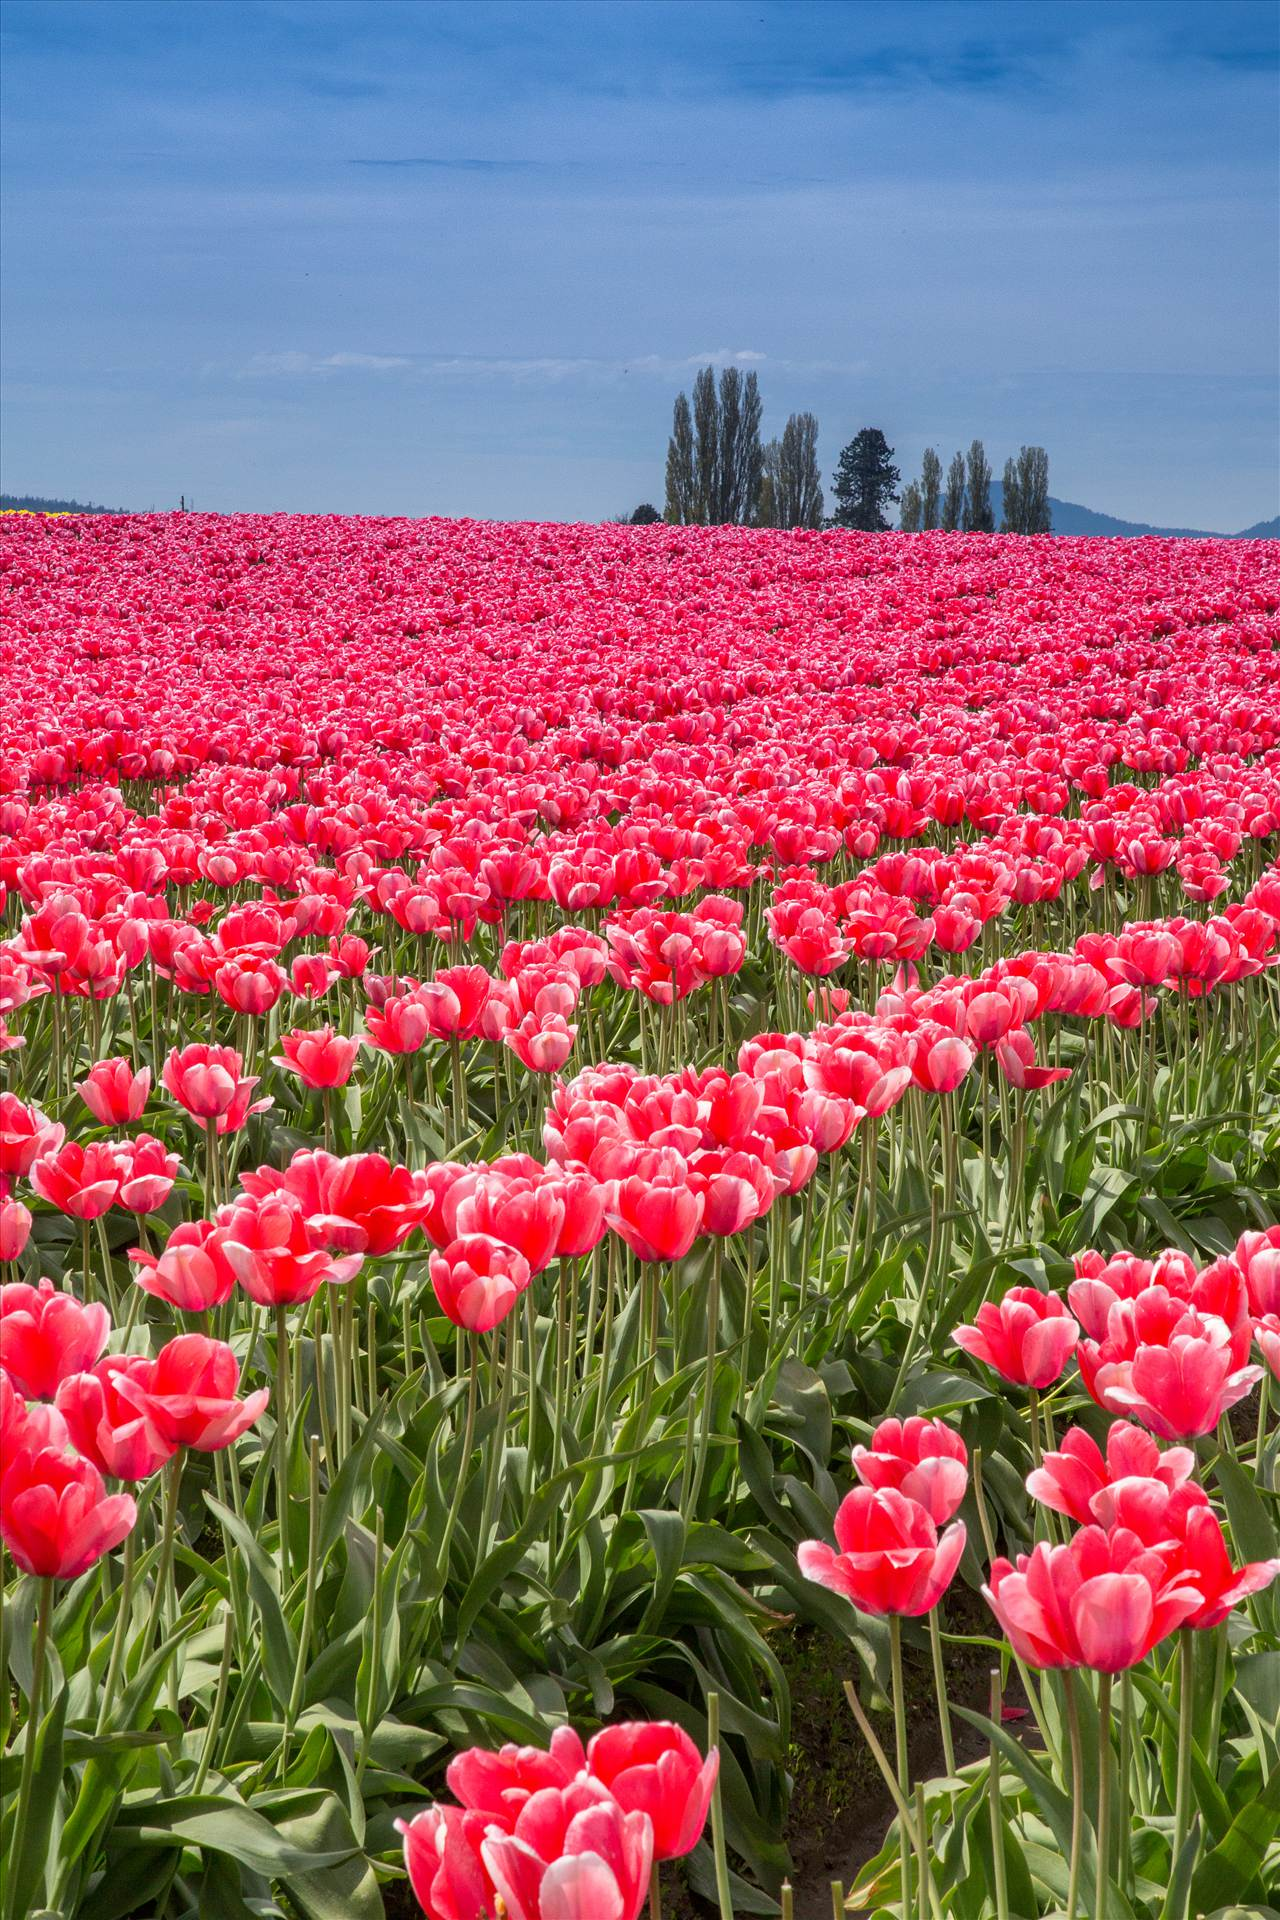 Tulips 3 - From the Skagit County Tulip Festival, 2012. by Scott Smith Photos